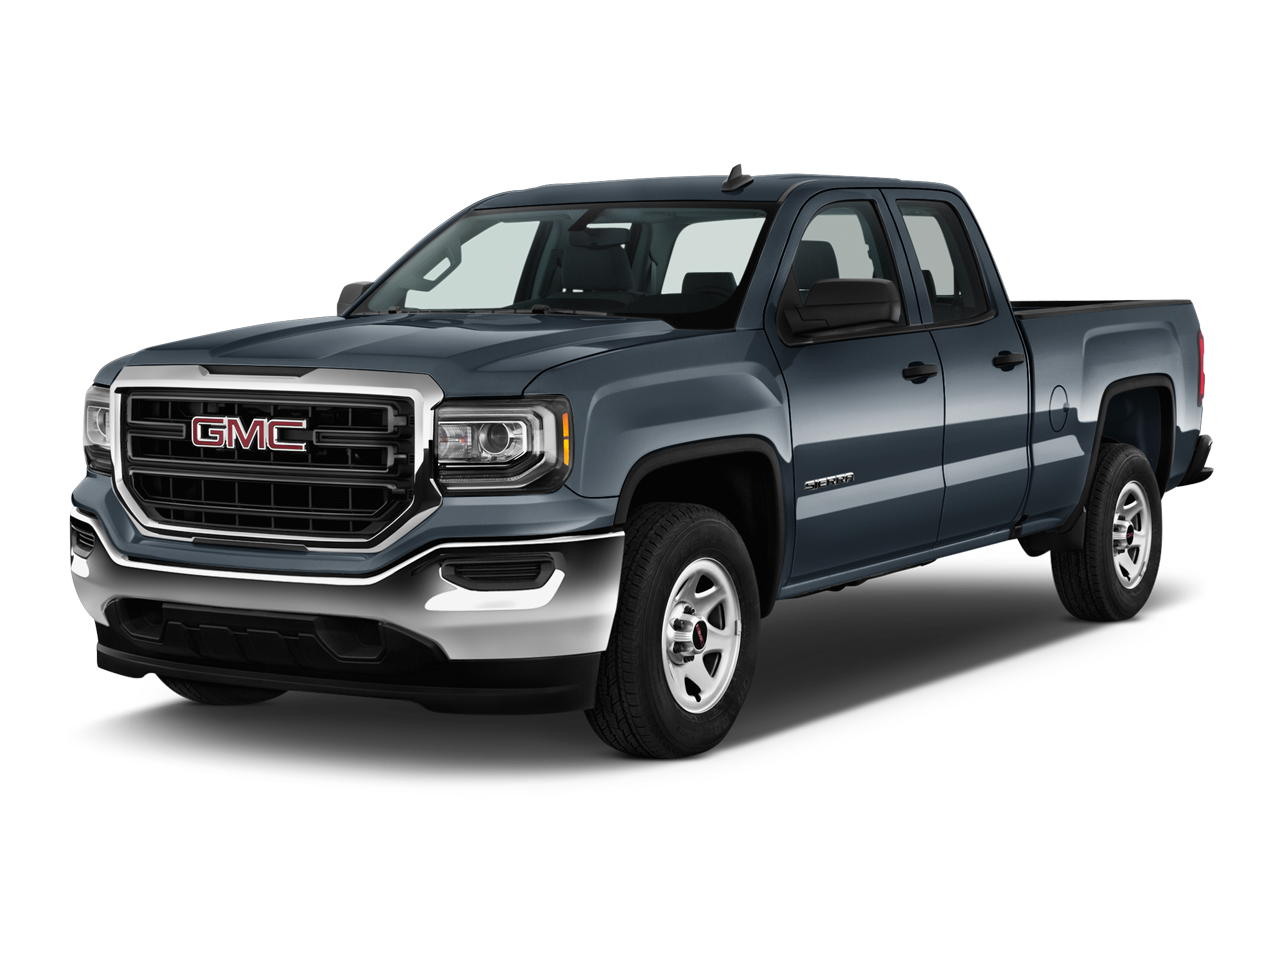 new 2018 gmc sierra 1500 sle highland mi lafontaine cadillac buick gmc. Black Bedroom Furniture Sets. Home Design Ideas